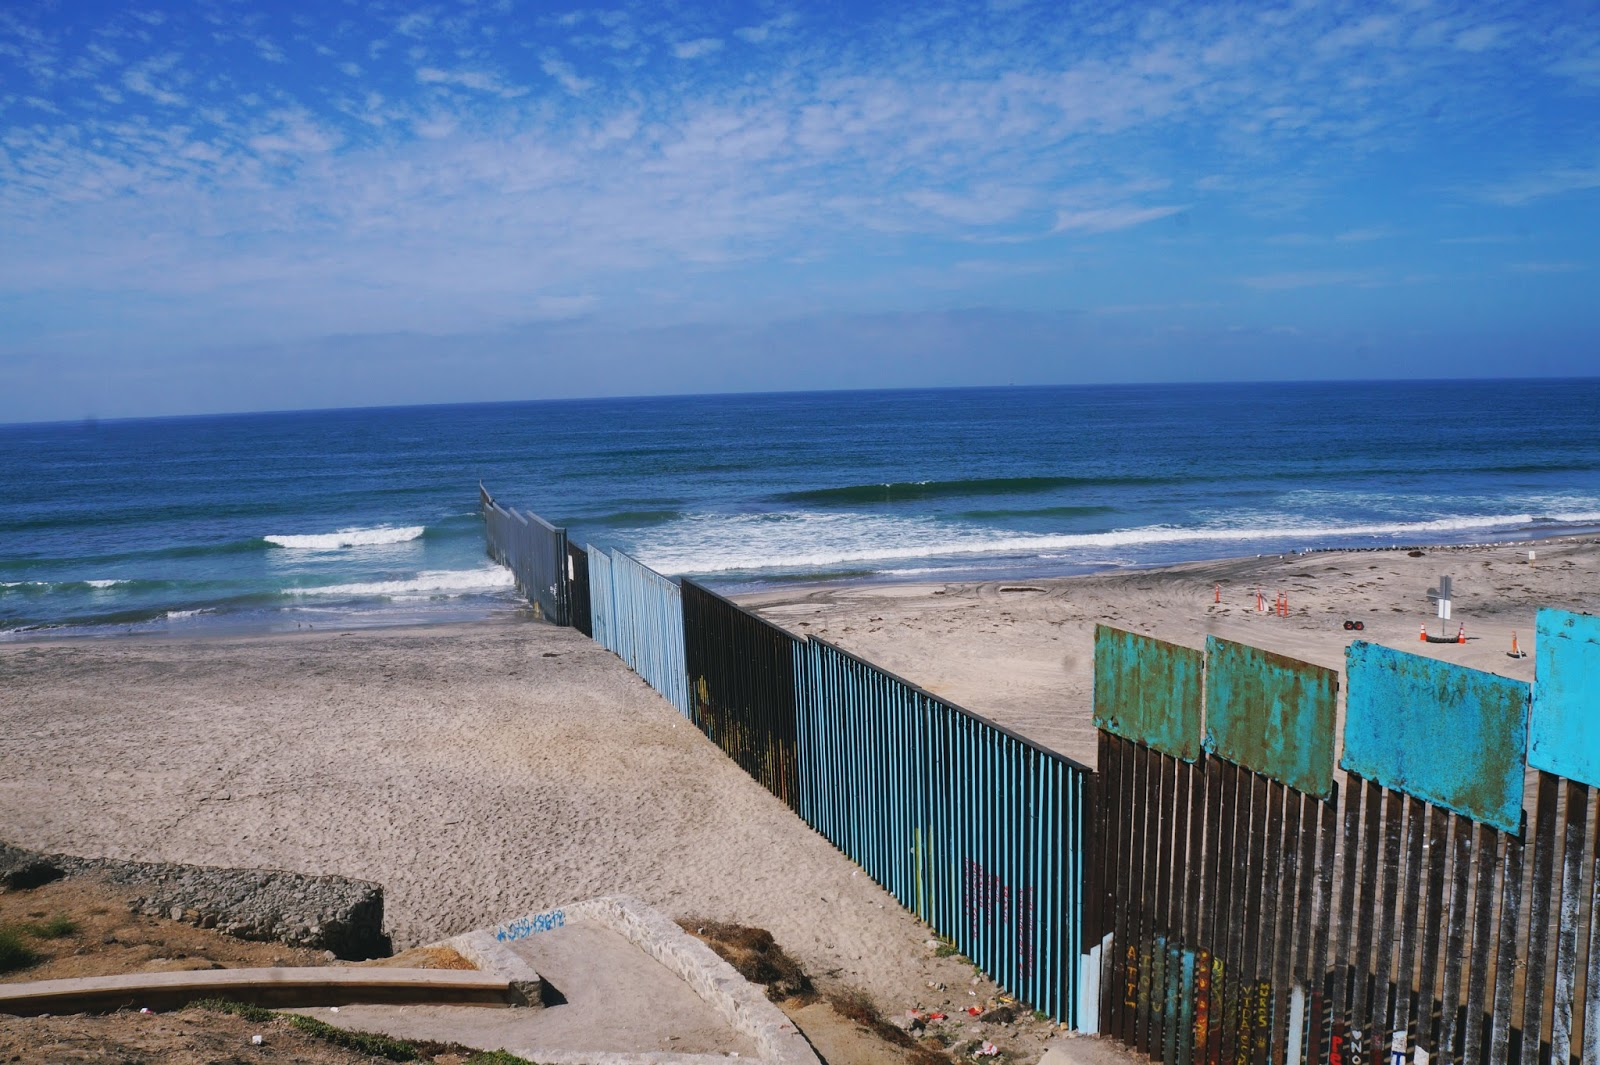 Things To Do at Playas de Tijuana, Mexico border